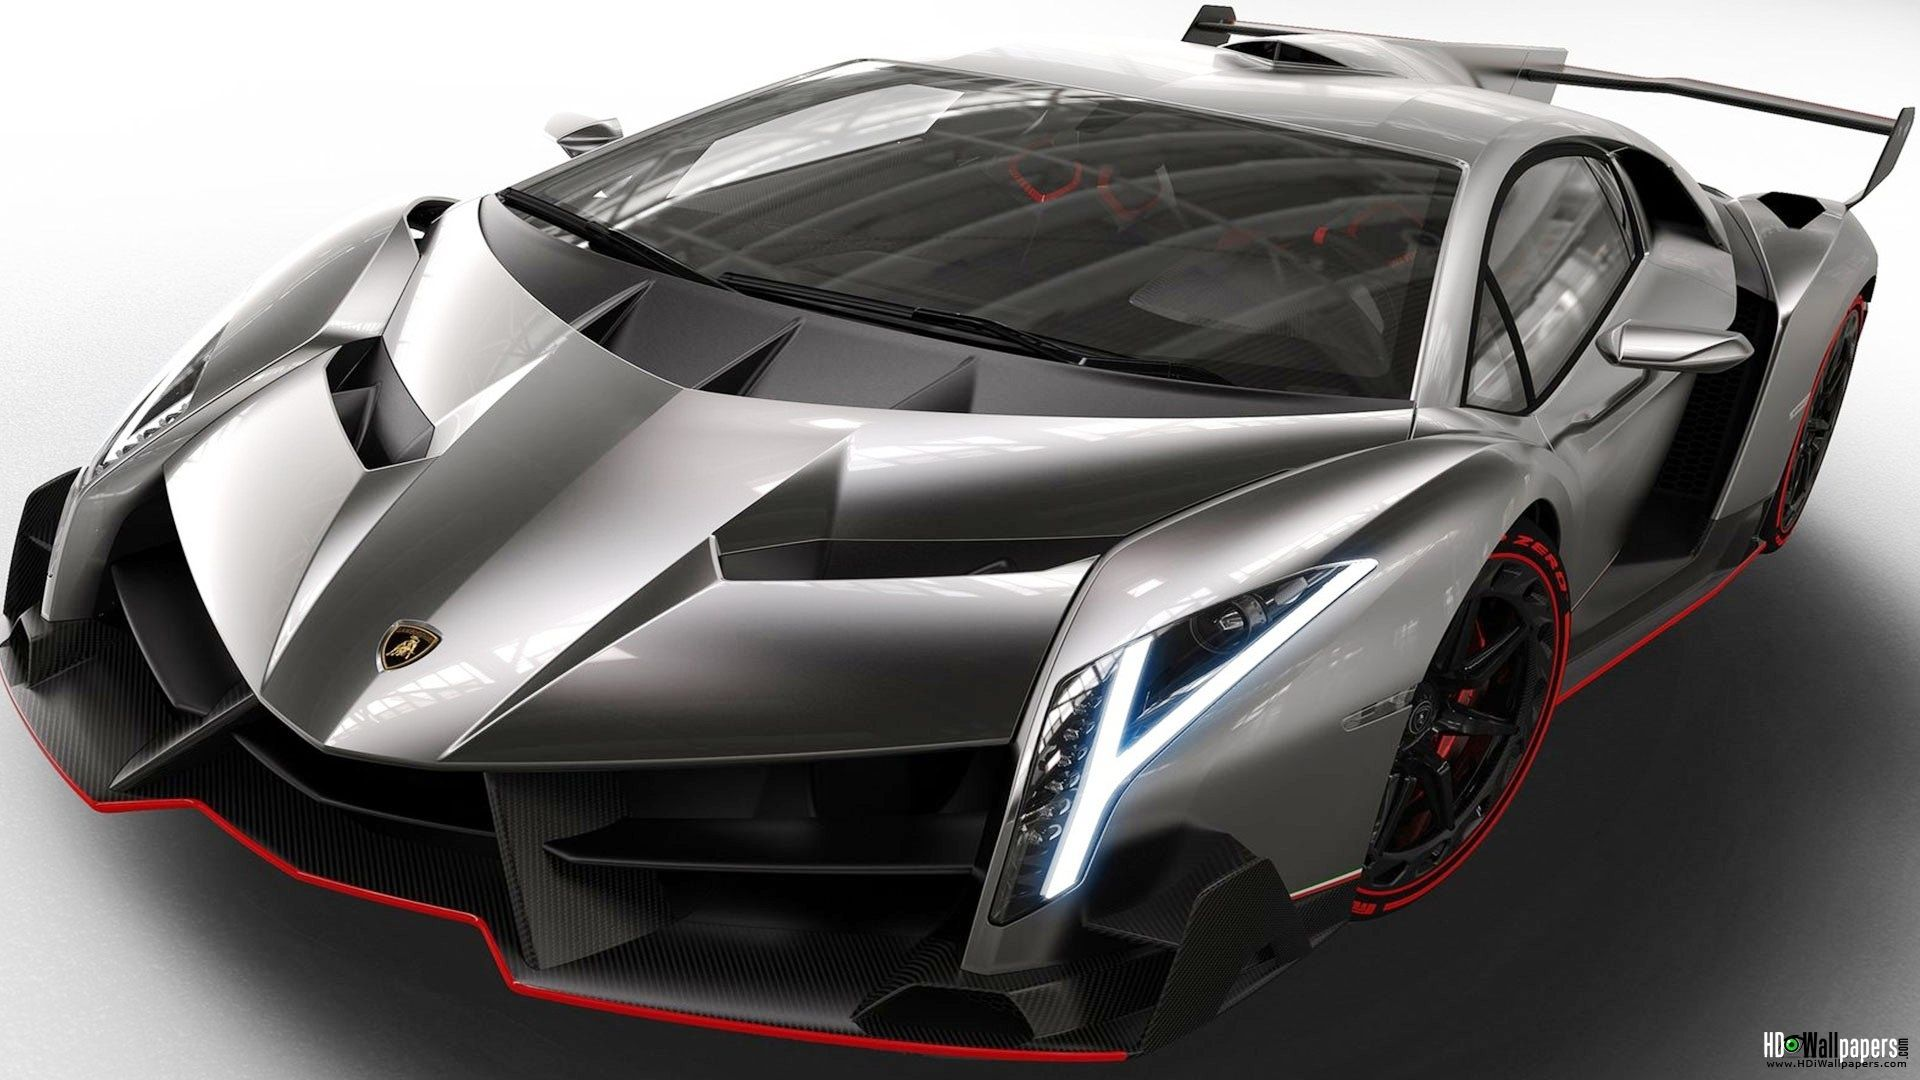 Top-10-Fastest-Cars-in-the-World-2014- | Super Cars | Pinterest ...